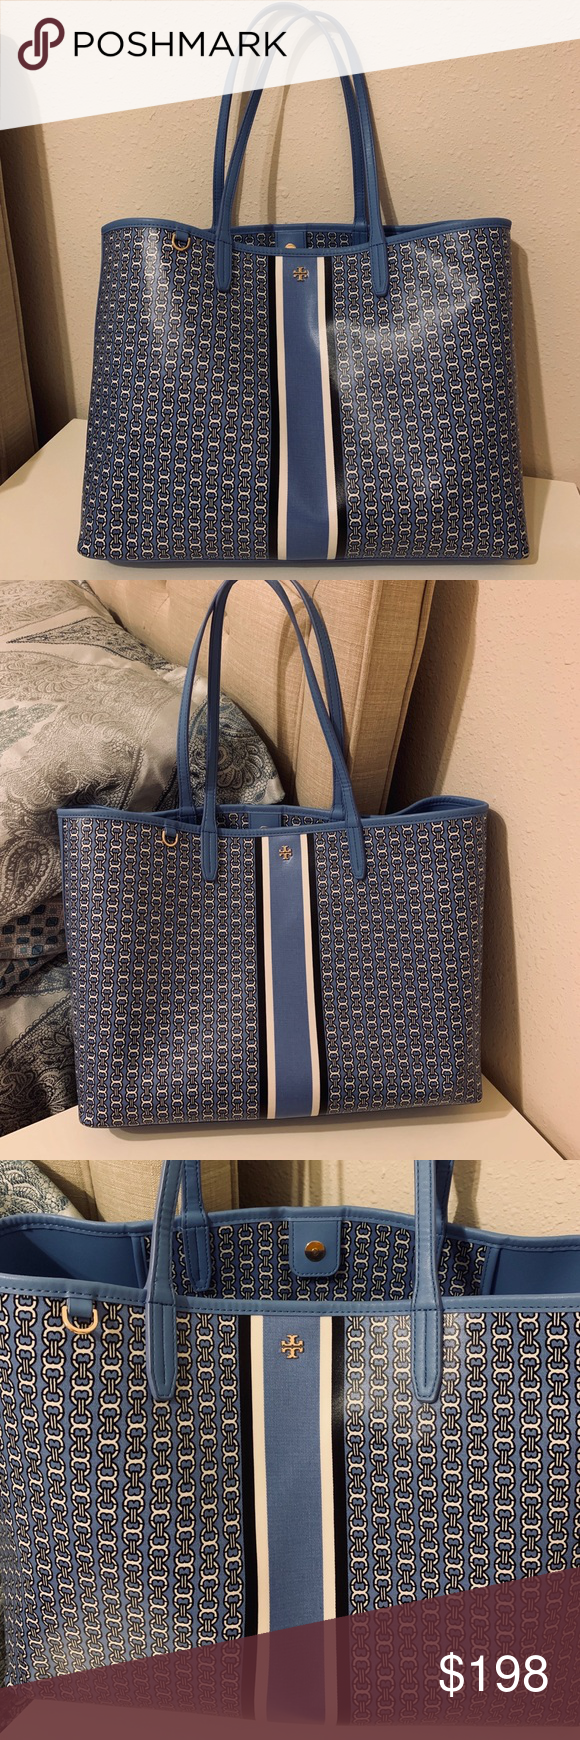 Tory Burch Gemini link tote in blue color New never used Holds a 15 laptop, a pair of flats, a continental wallet, a small umbrella and a phone Water-resistant coated canvas Magnetic snap closure Shoulder straps with 9.16 (23 cm) drop 1 interior hanging pocket Height: 11.55 (29 cm); length: 15.54 (39 cm); depth: 5.78 (14.5 cm) Blue dusk color goes with every outfit Tory Burch Bags Totes #smallumbrella Tory Burch Gemini link tote in blue color New never used Holds a 15 laptop, a pair of flat #smallumbrella